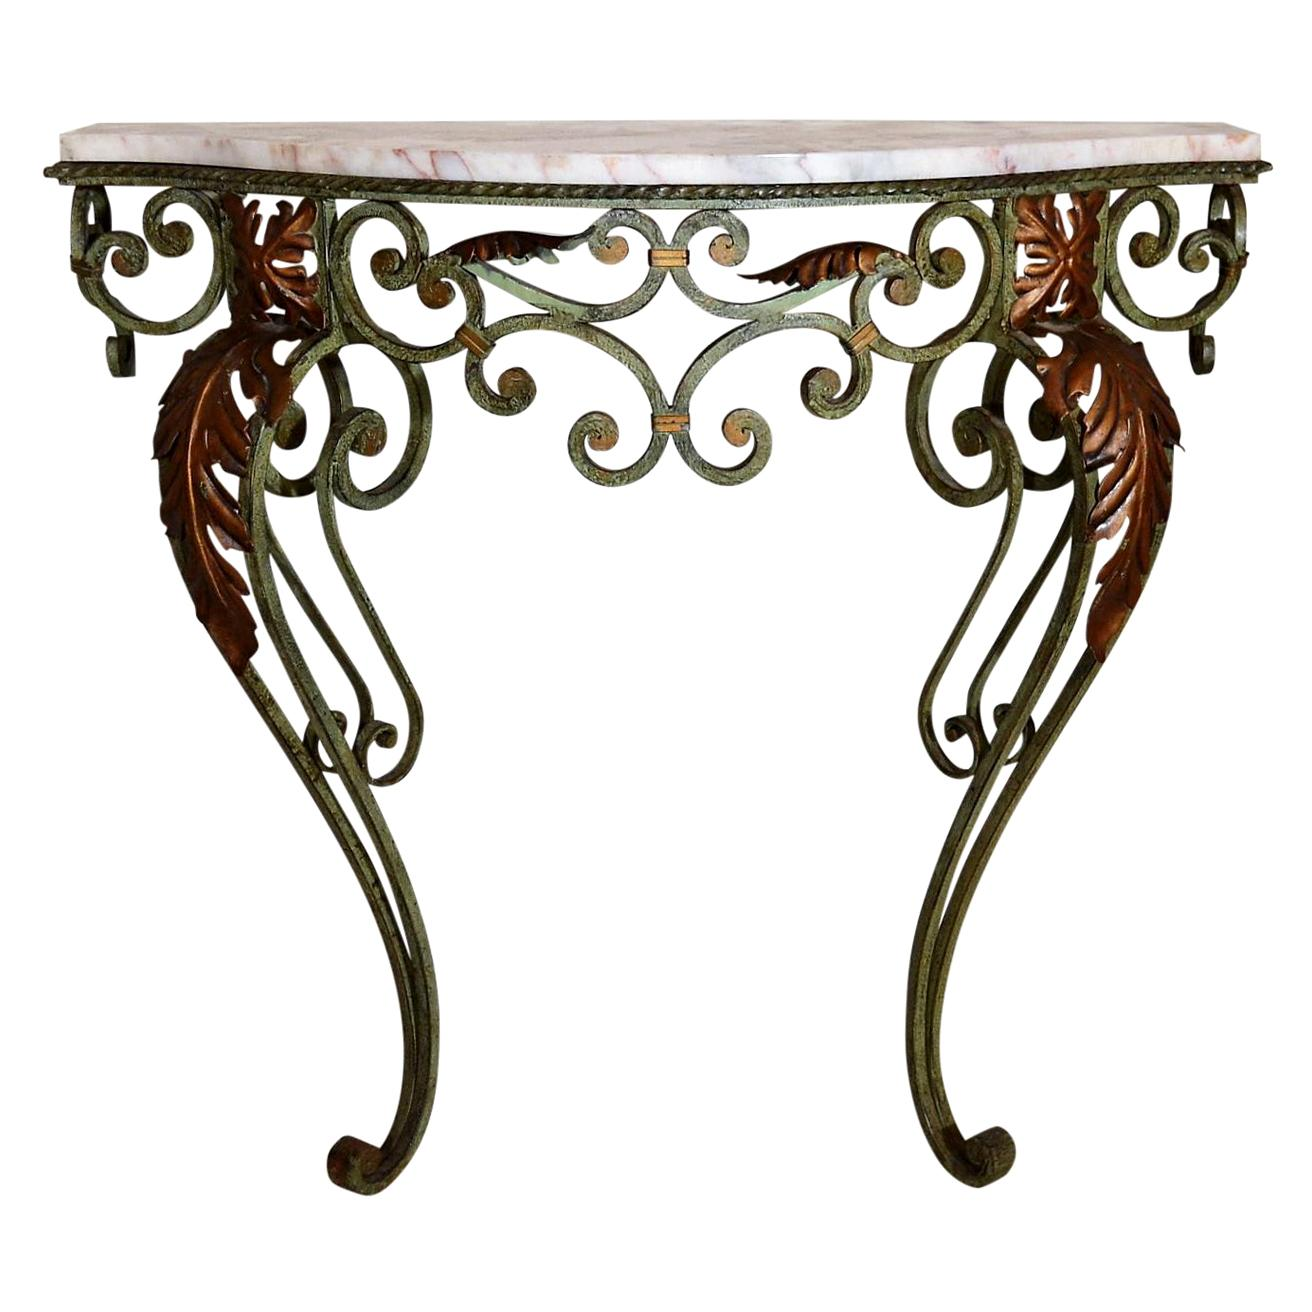 Antique French Wrought Iron and Marble Console